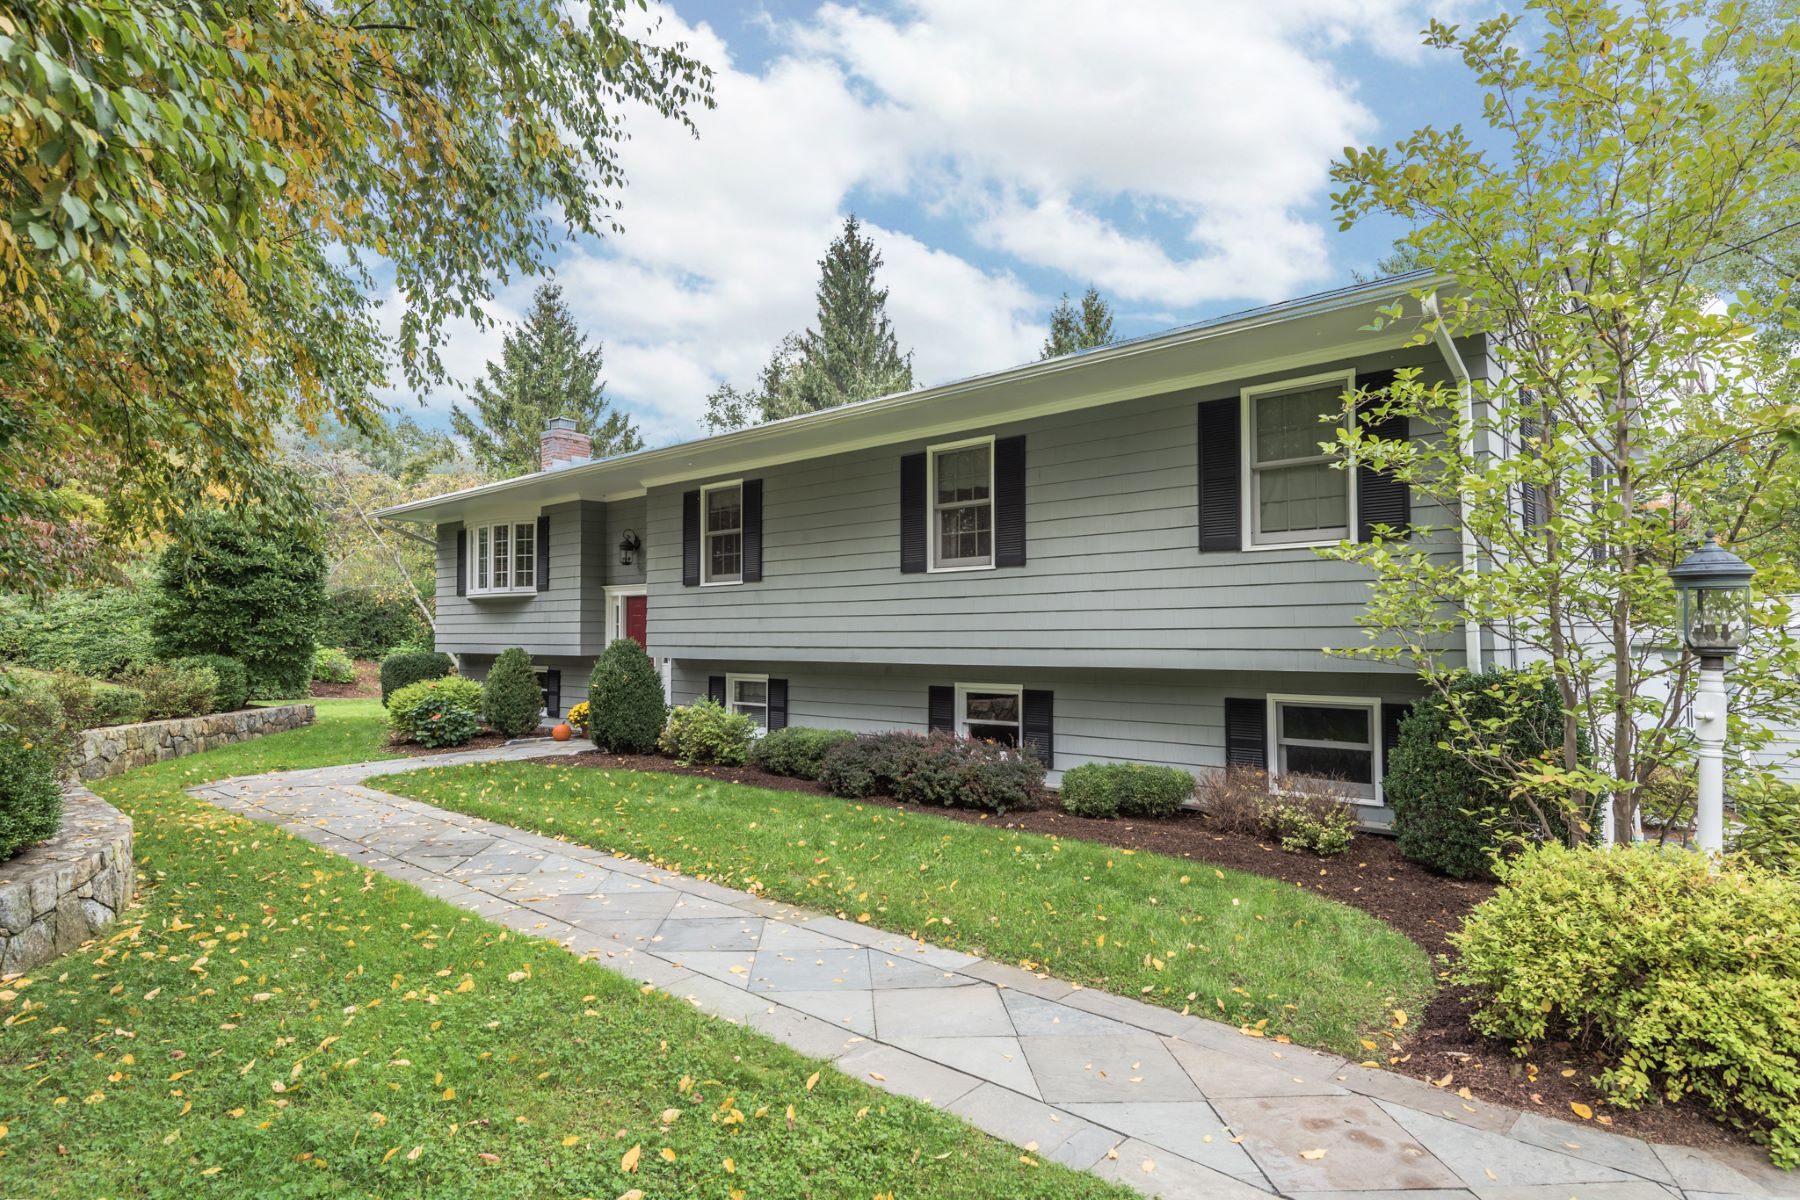 Single Family Home for Sale at Oversized And Customized Raised Ranch 27 Dorset Dr New Milford, Connecticut 06776 United States